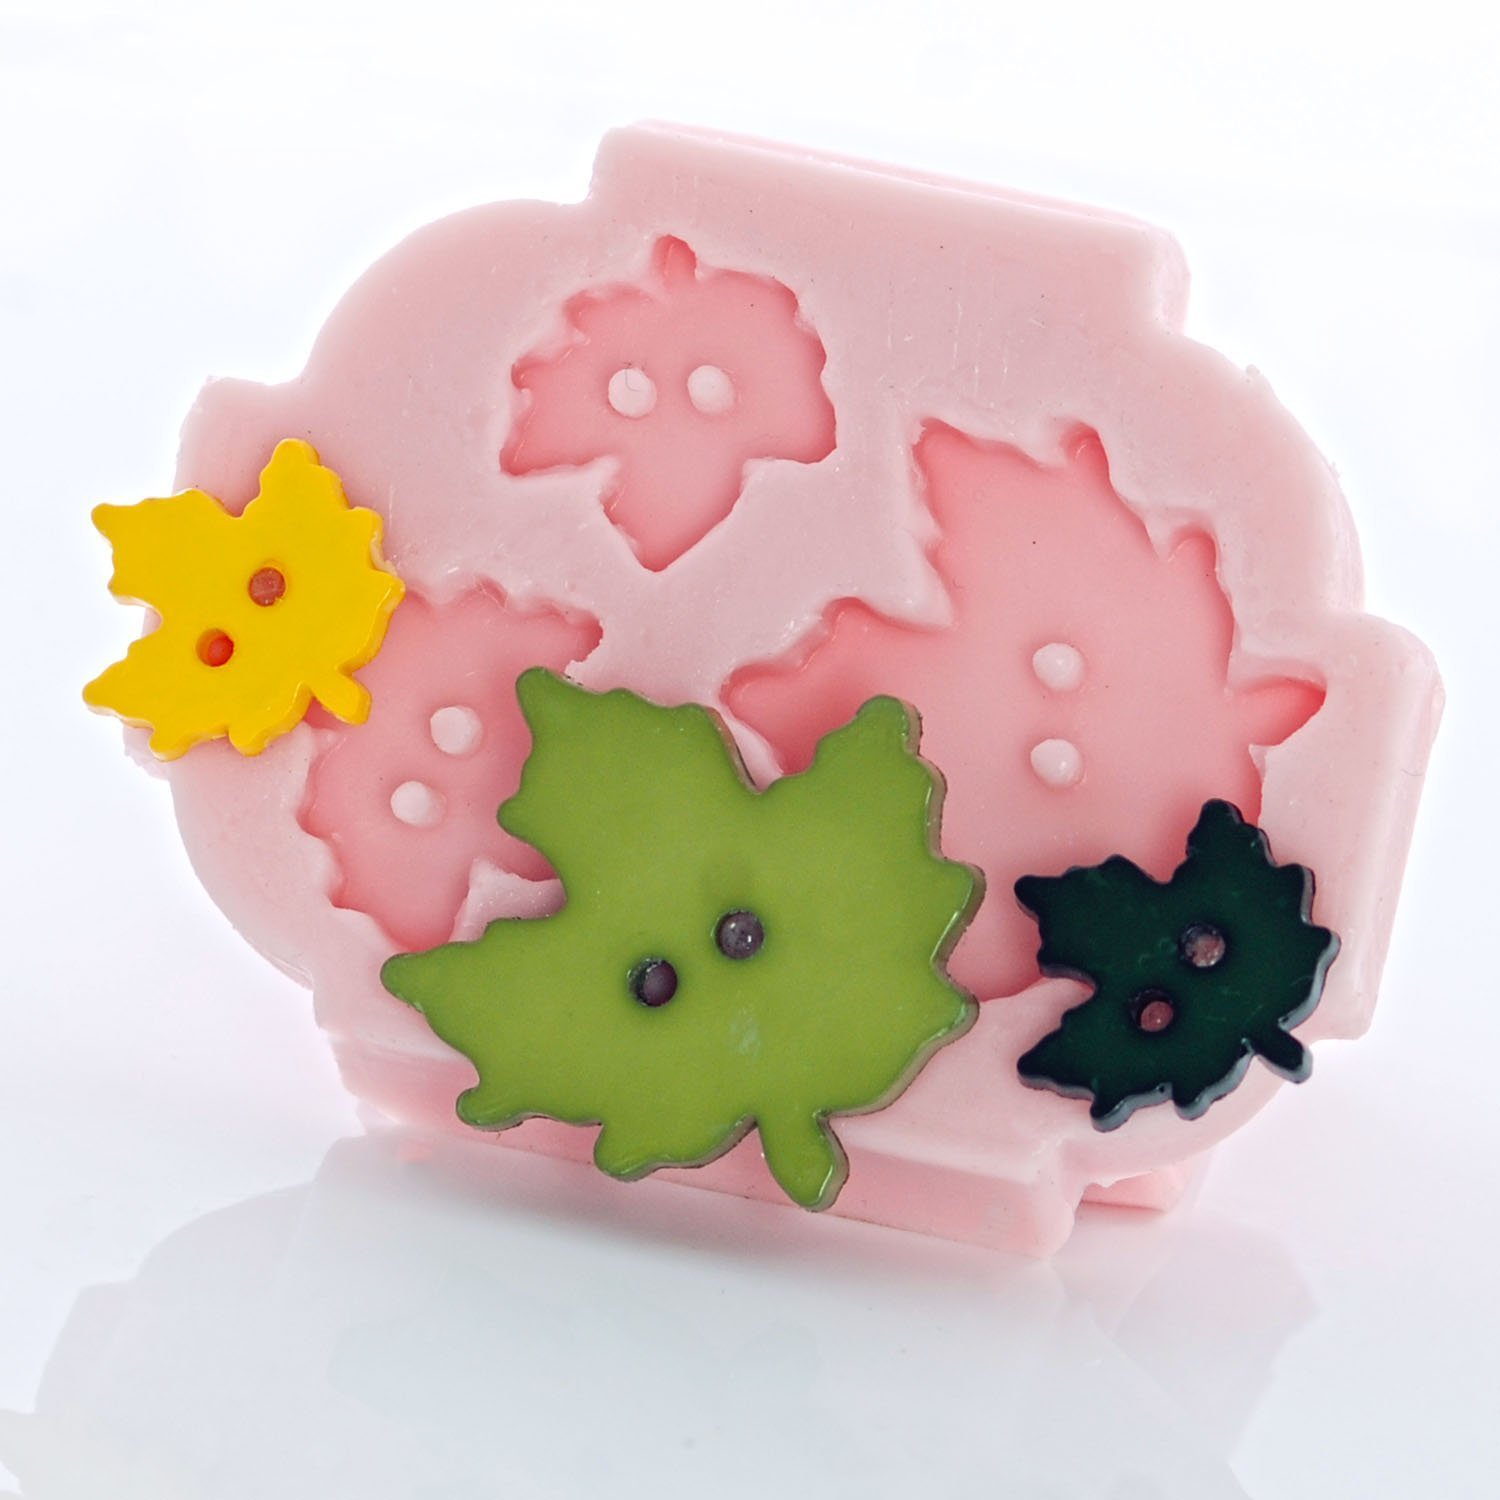 Maple Leaf Button Silicone Mold use with Fondant, Candy, Chocolate, Food Safe, Polymer Clay, Resin Mold, Epoxy Perfect Size for Earrings.